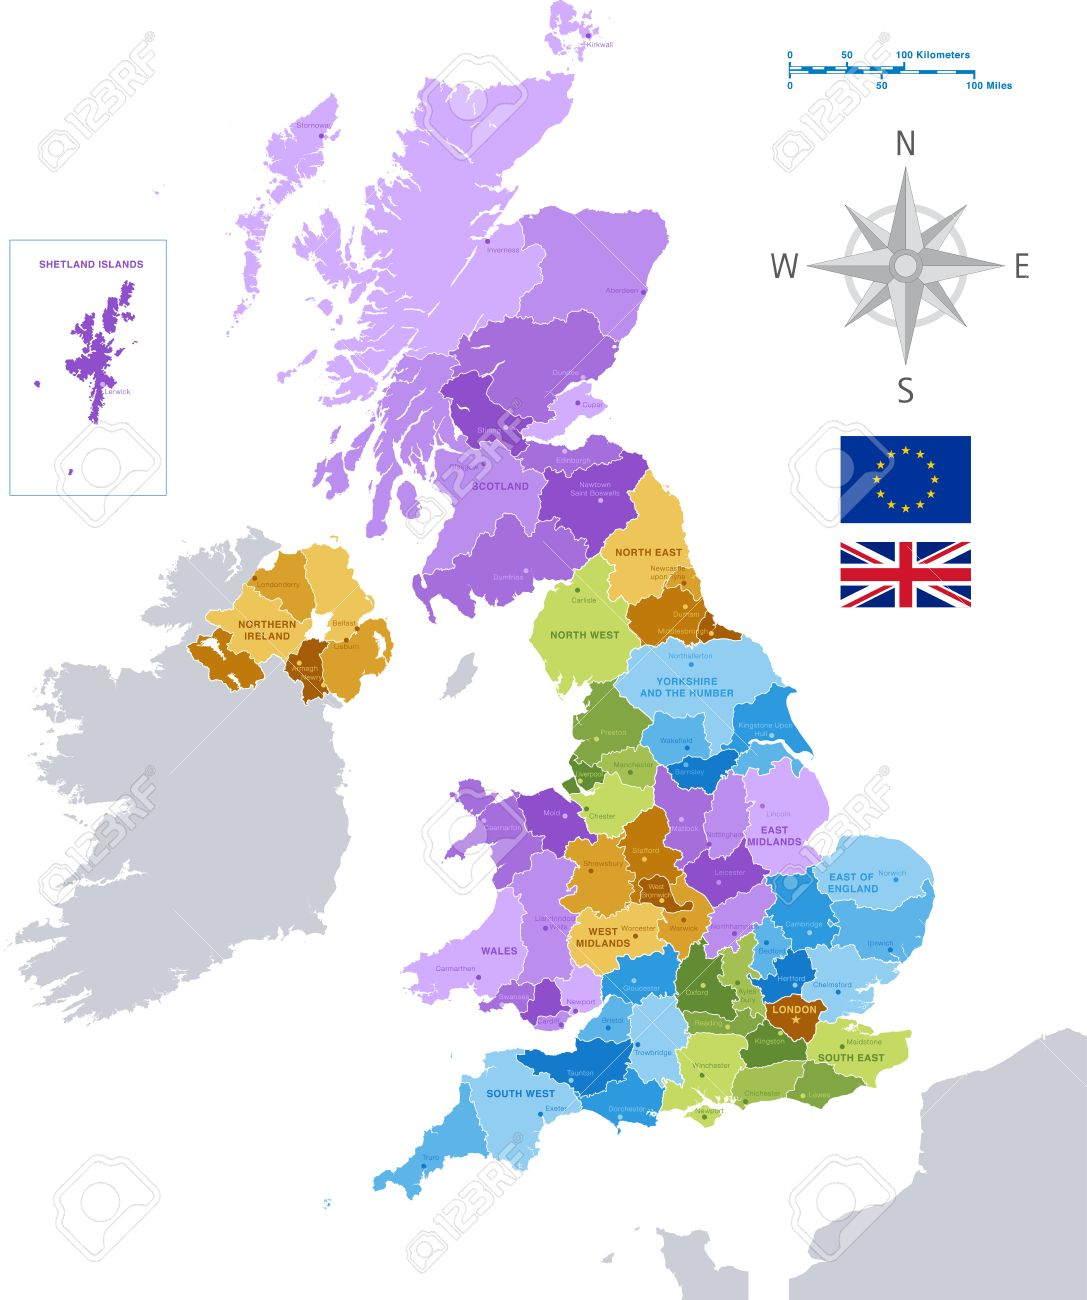 Map Of Major Uk Cities.High Detail Colorful Vector Map Of United Kingdom Regions Administrative